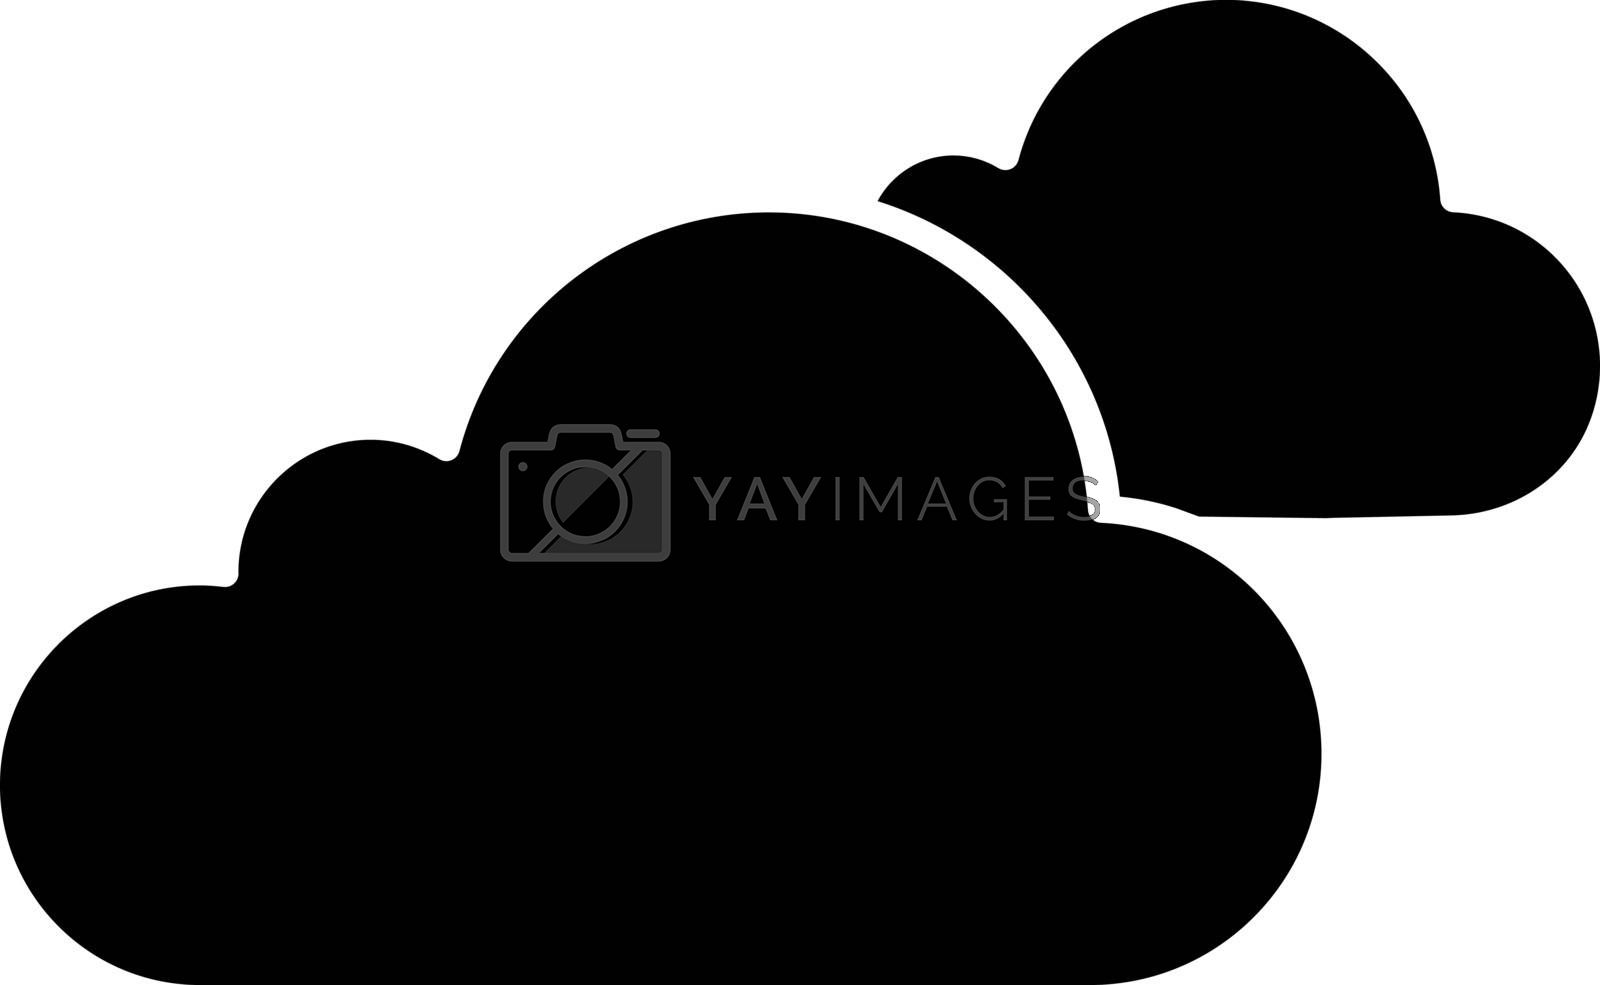 Cloudy weather glyph icon. Clouds. Heavy clouds. Overcast. Weather forecast. Silhouette symbol. Negative space. Vector isolated illustration